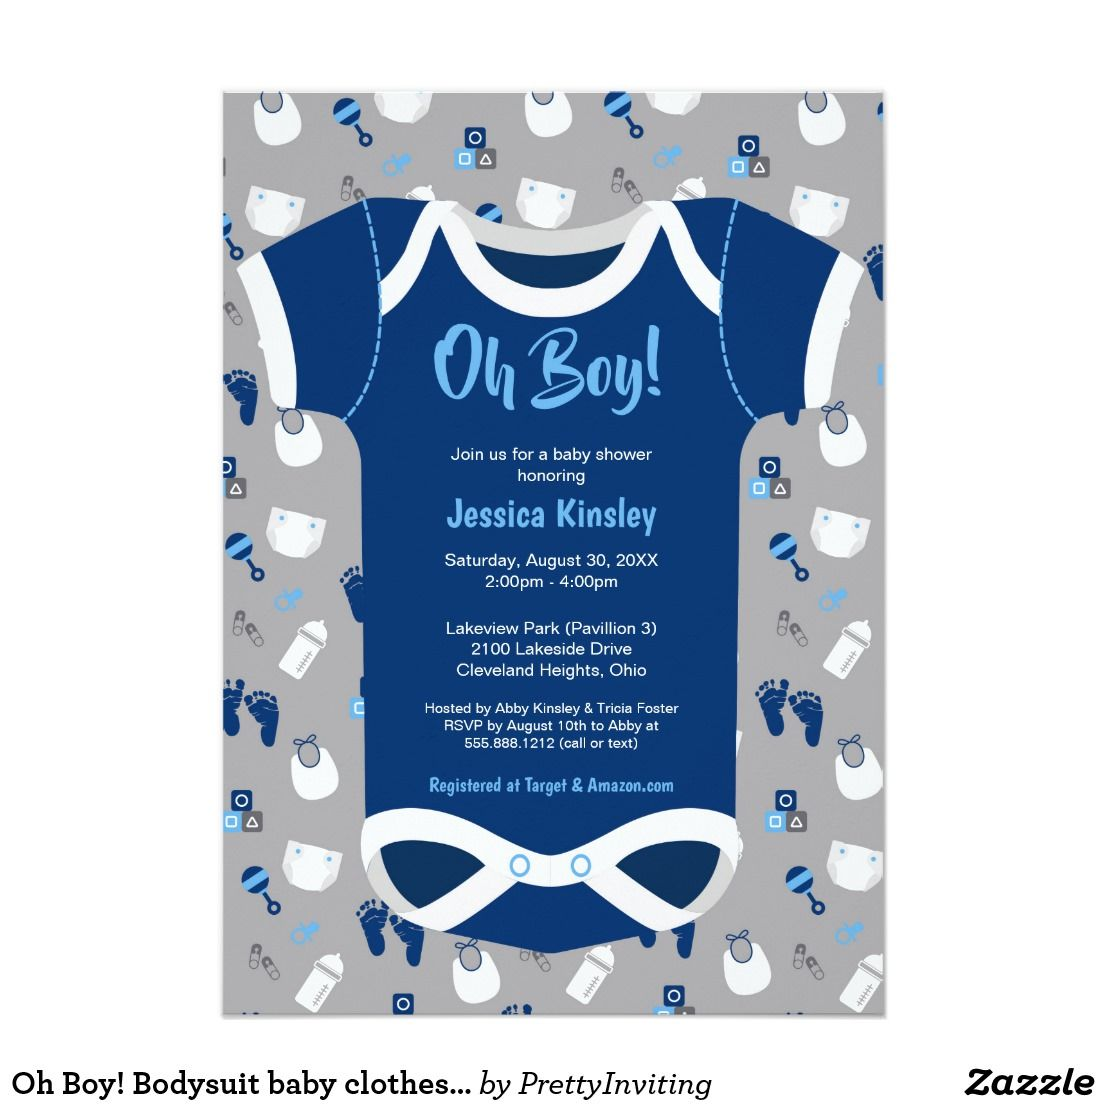 Oh Boy! Bodysuit baby clothes shower invitation | Shower invitations ...